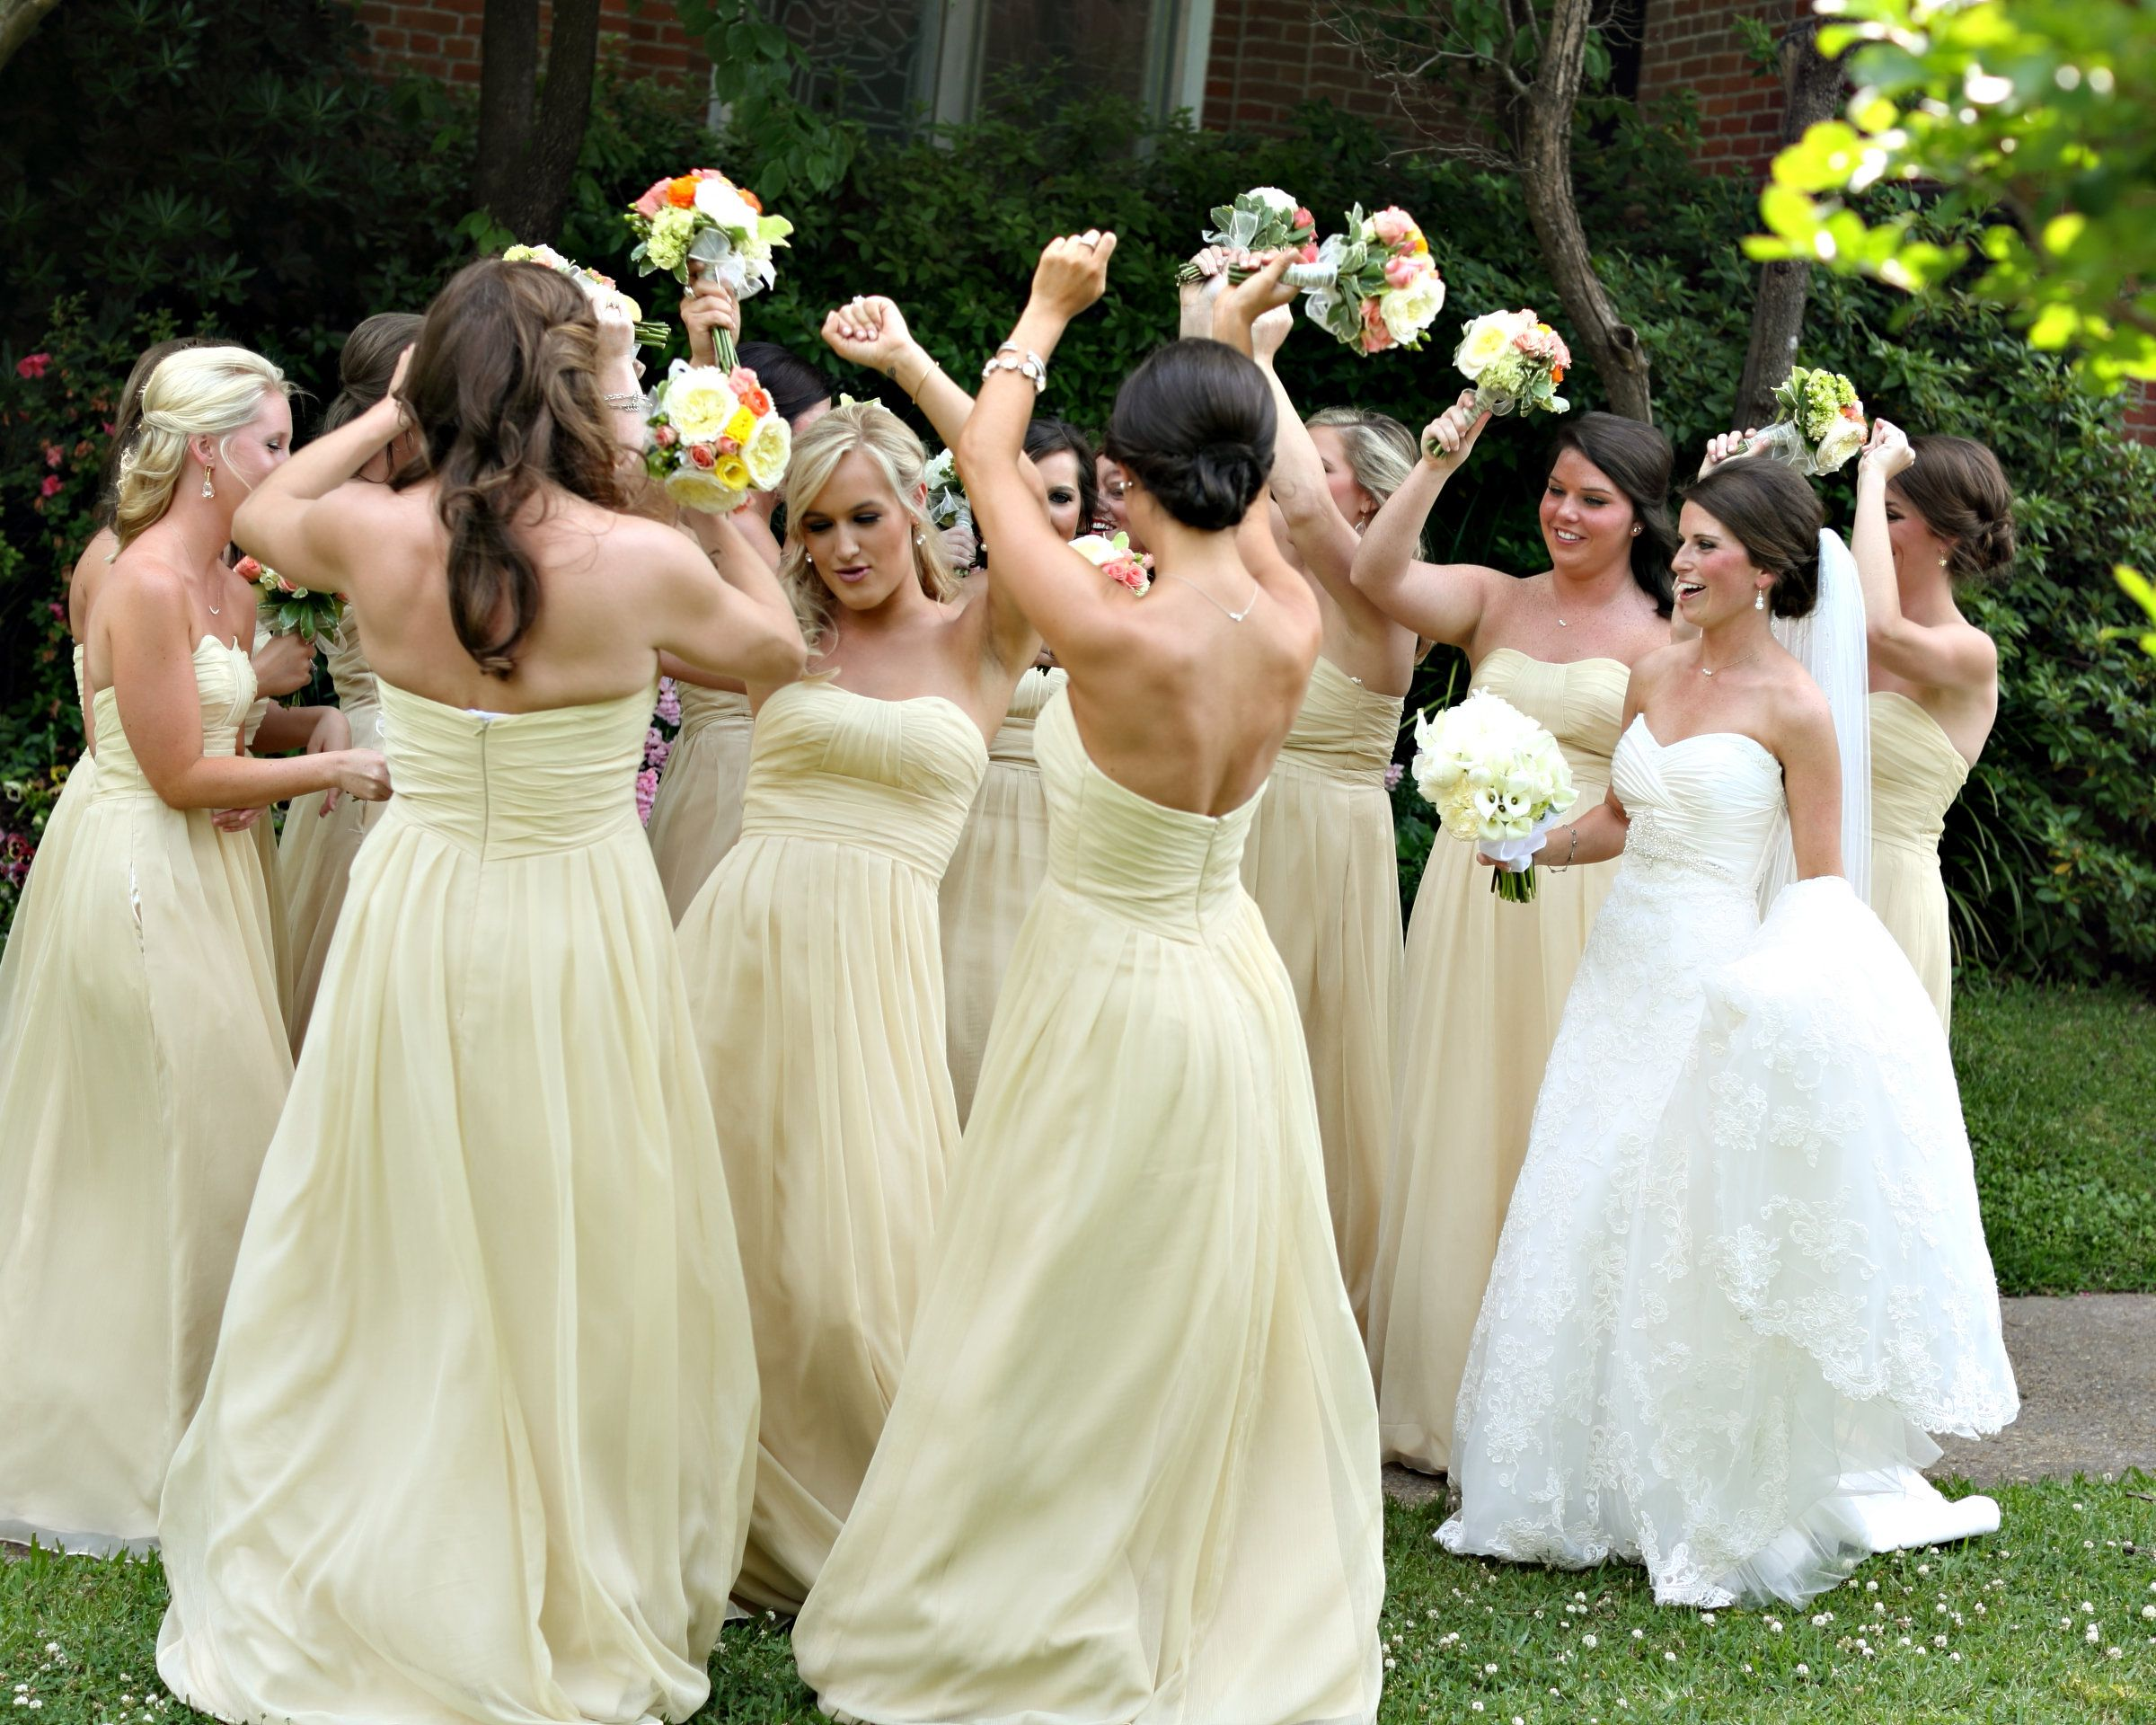 buttercup bridesmaids dresses pale yellow bridesmaids